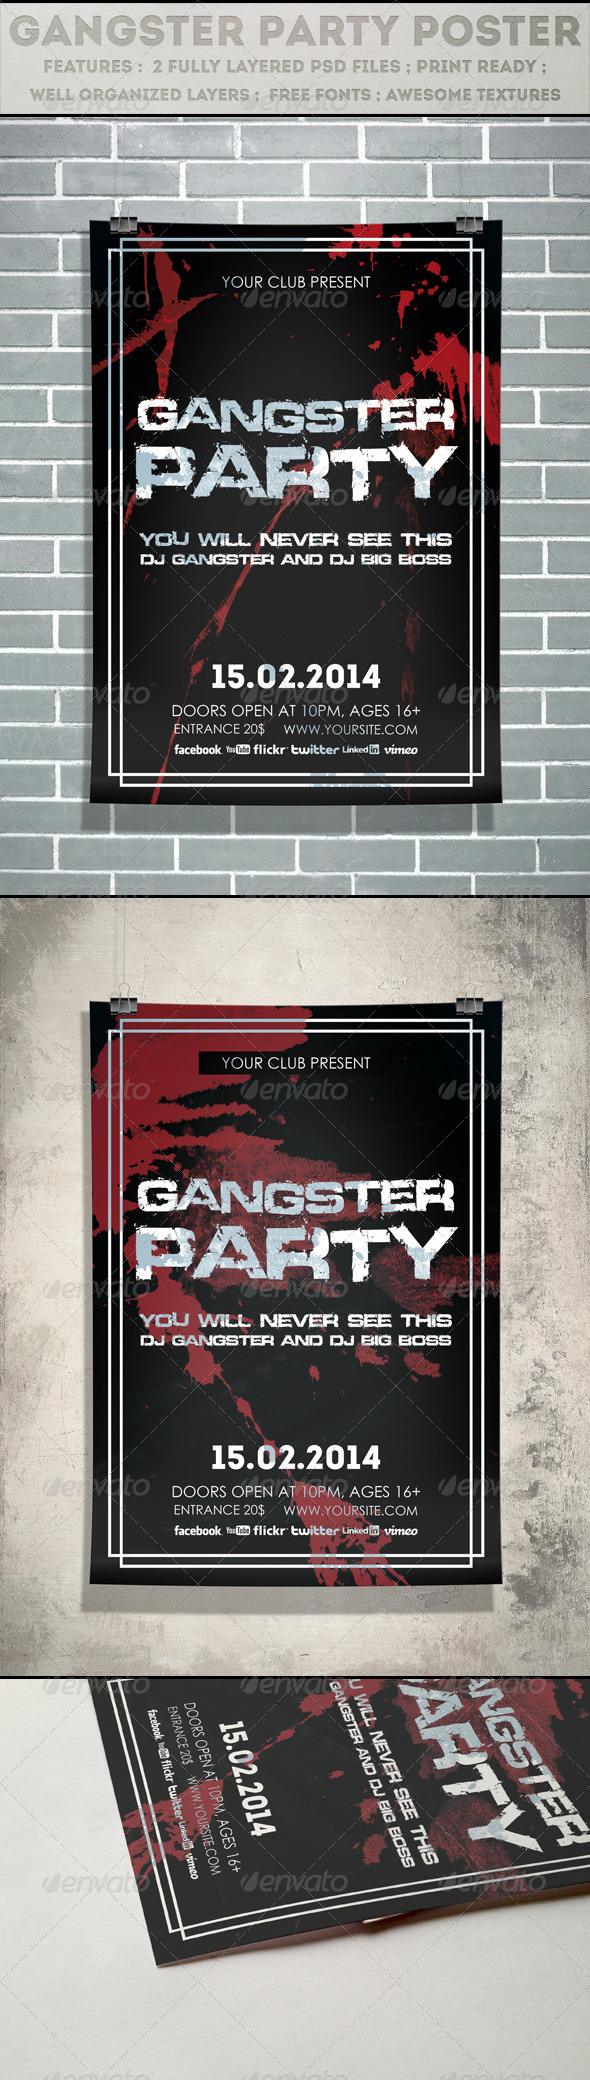 Gangster Party Poster - Clubs & Parties Events